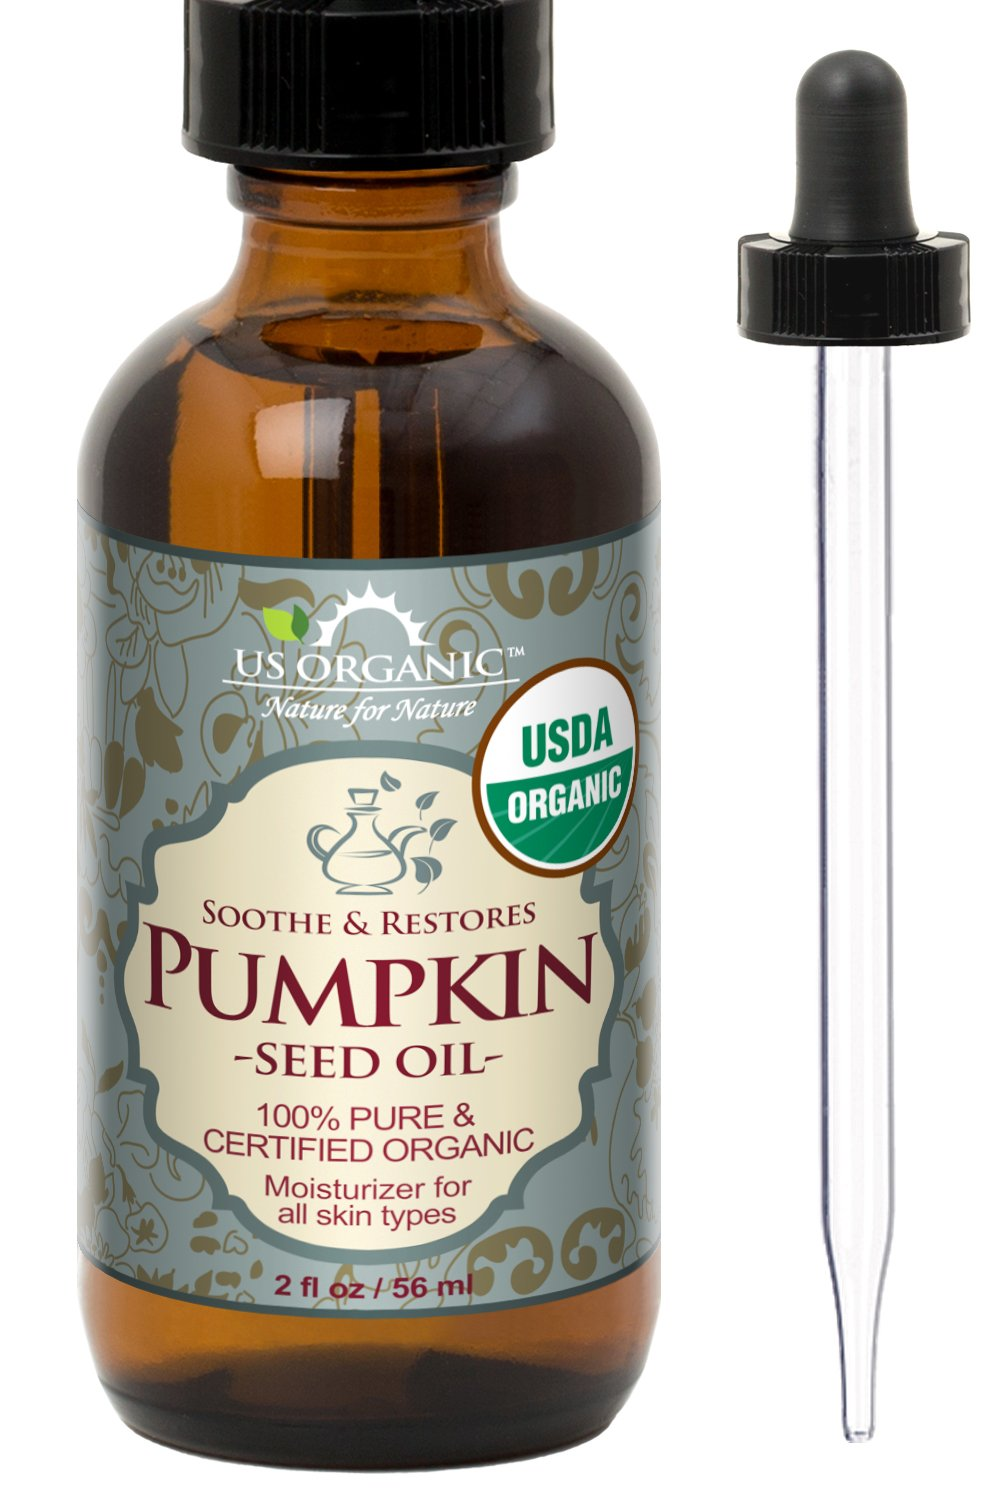 US Organic Pumpkin Seed Oil, USDA Certified Organic,100% Pure & Natural, Cold Pressed Virgin, Unrefined in Amber Glass Bottle w/ Glass Eyedropper for Easy Application (2 oz (56 ml)) US Organic Group Corp